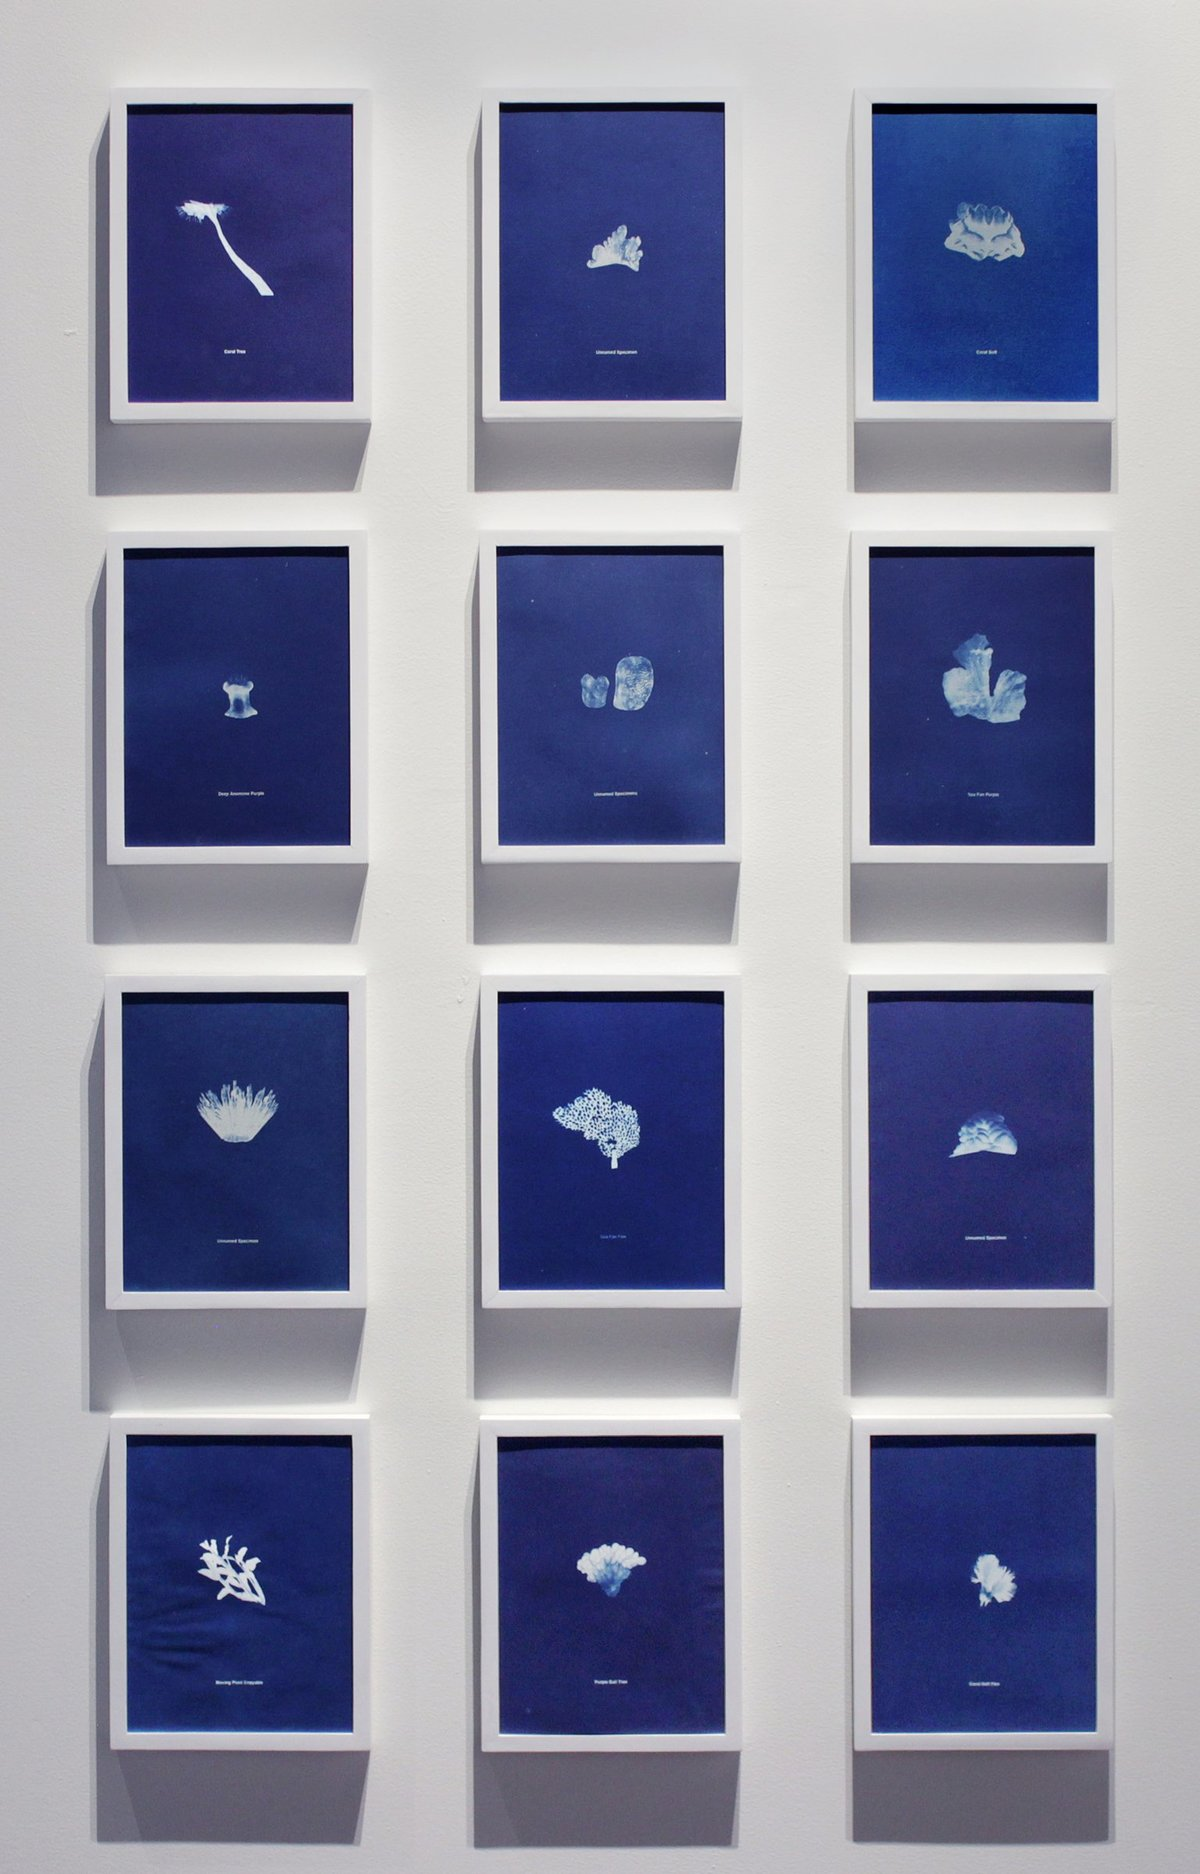 Anna atkins cropped corrected